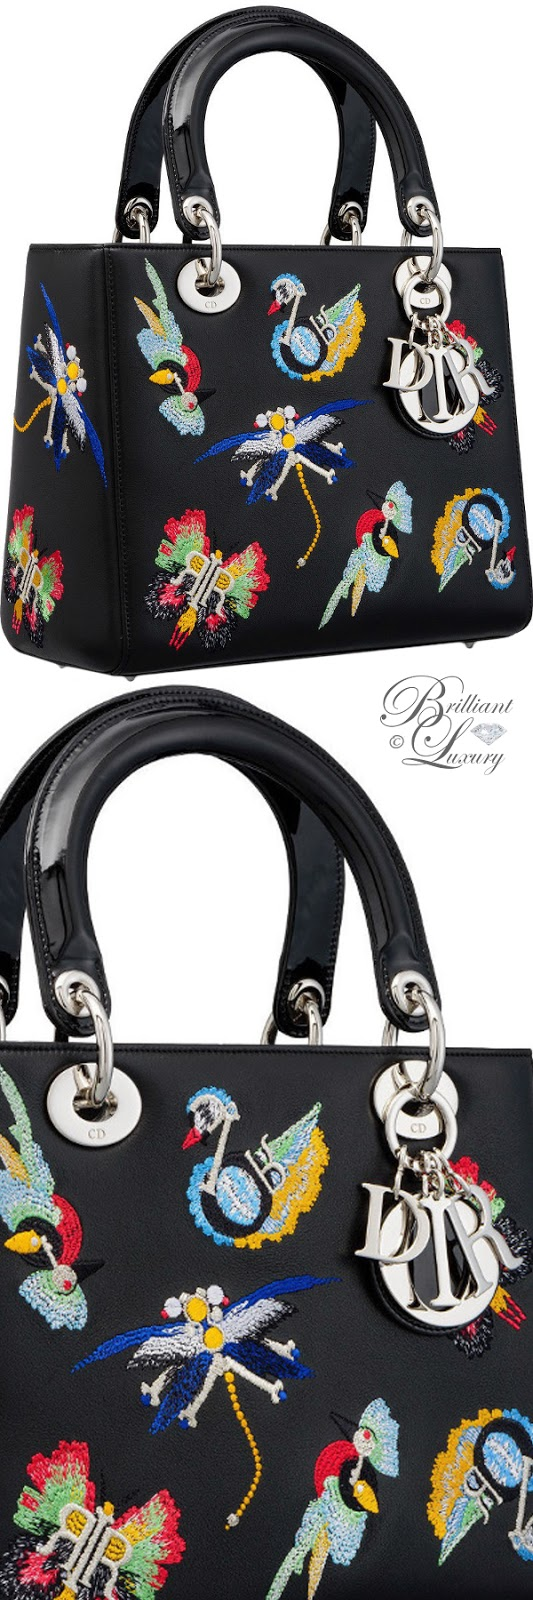 Brilliant Luxury ♦ Lady Dior bag in black calfskin embroidered with animals inspired by Dior charms